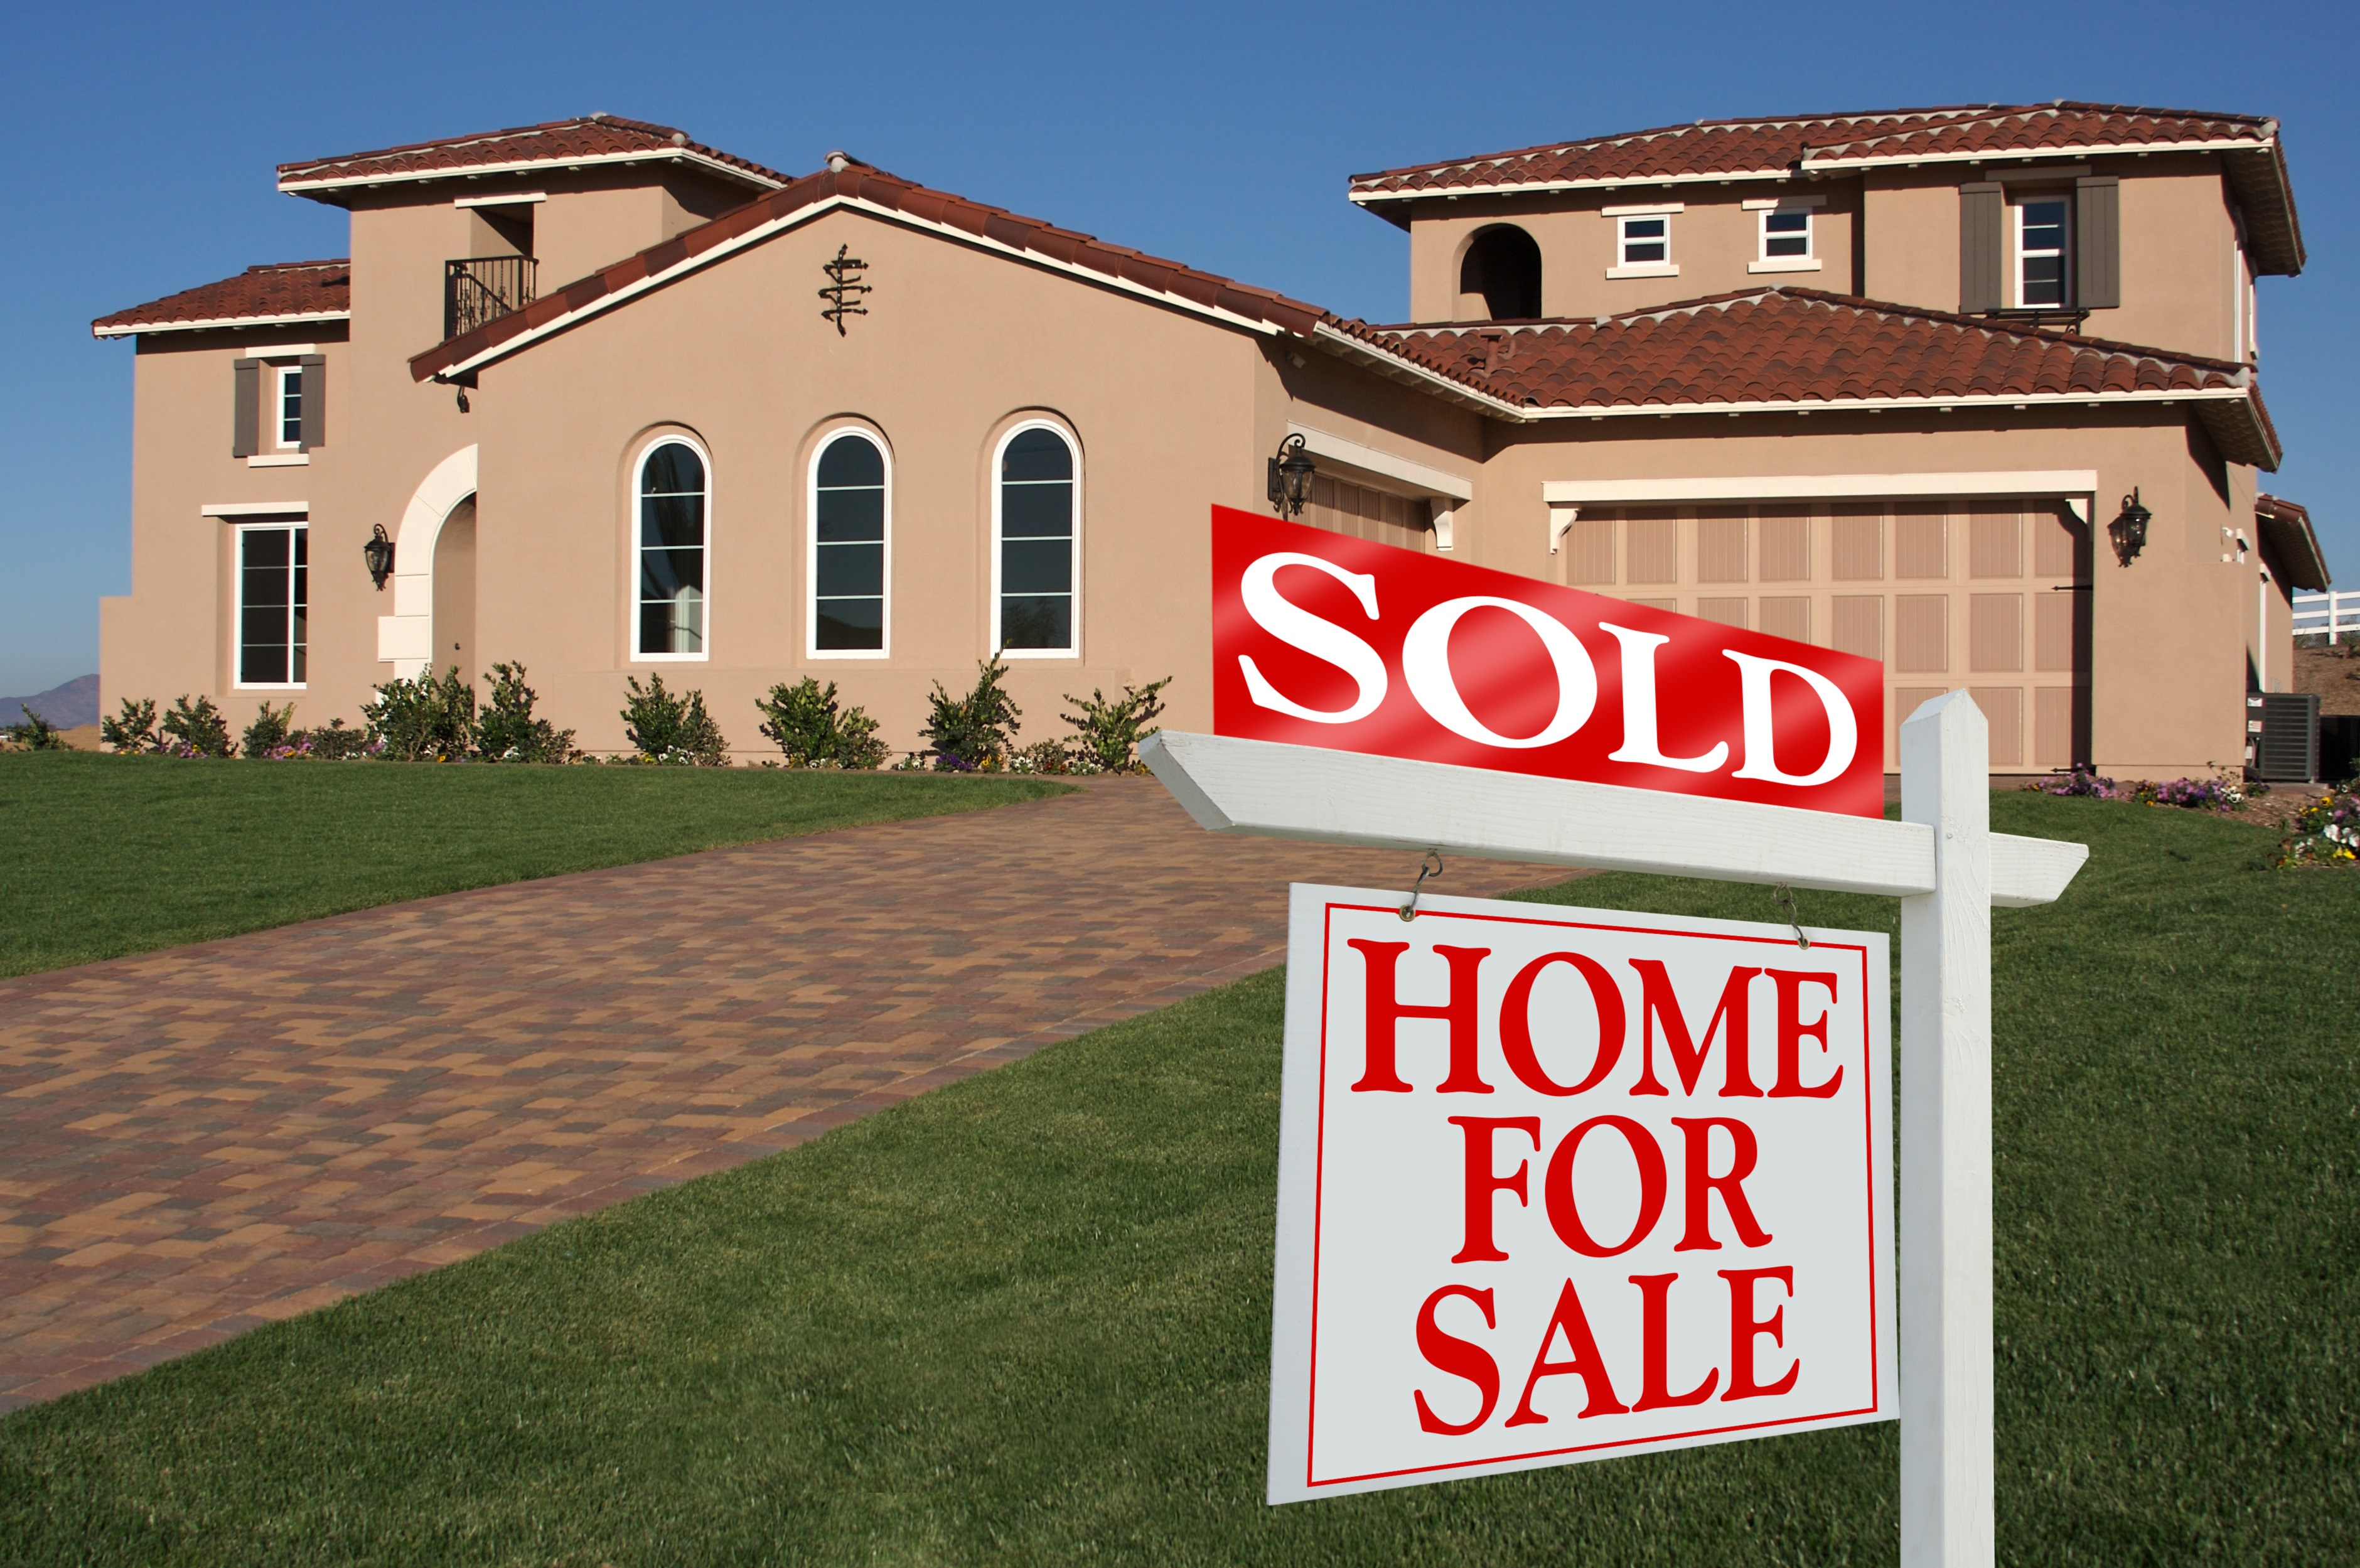 Sold Home For Sale Sign In Front Of New House.